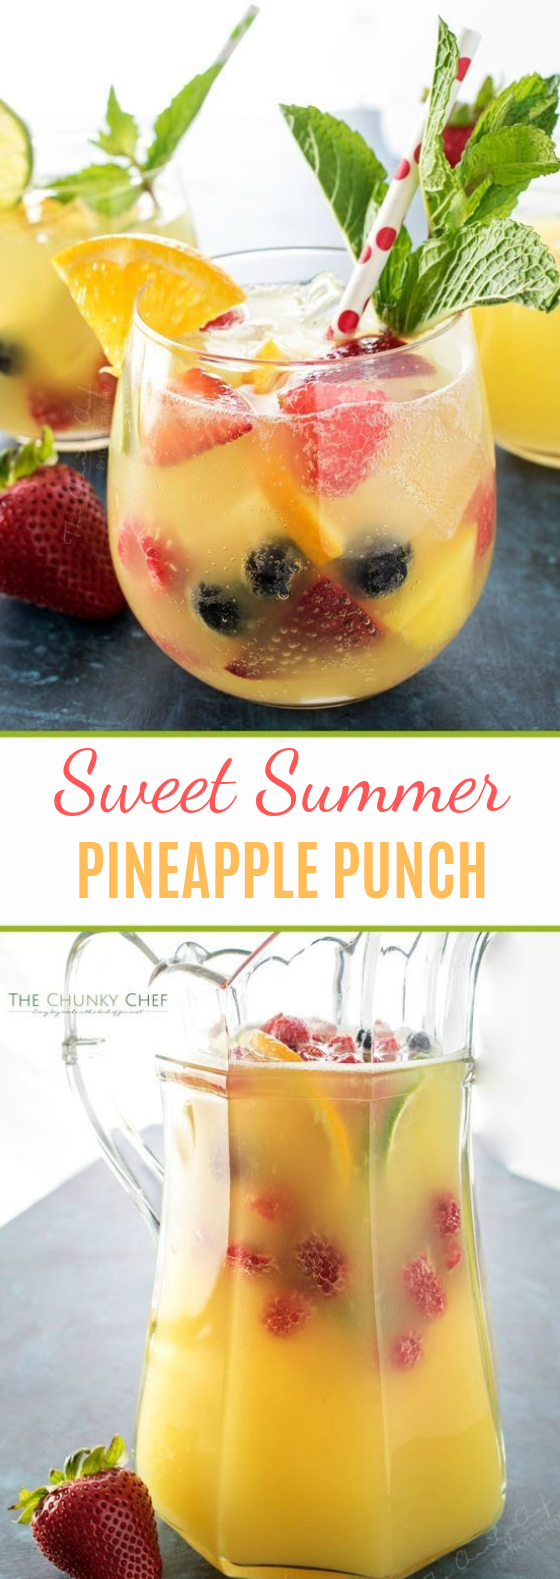 Fizzy Pineapple Punch #summerdrink #punch